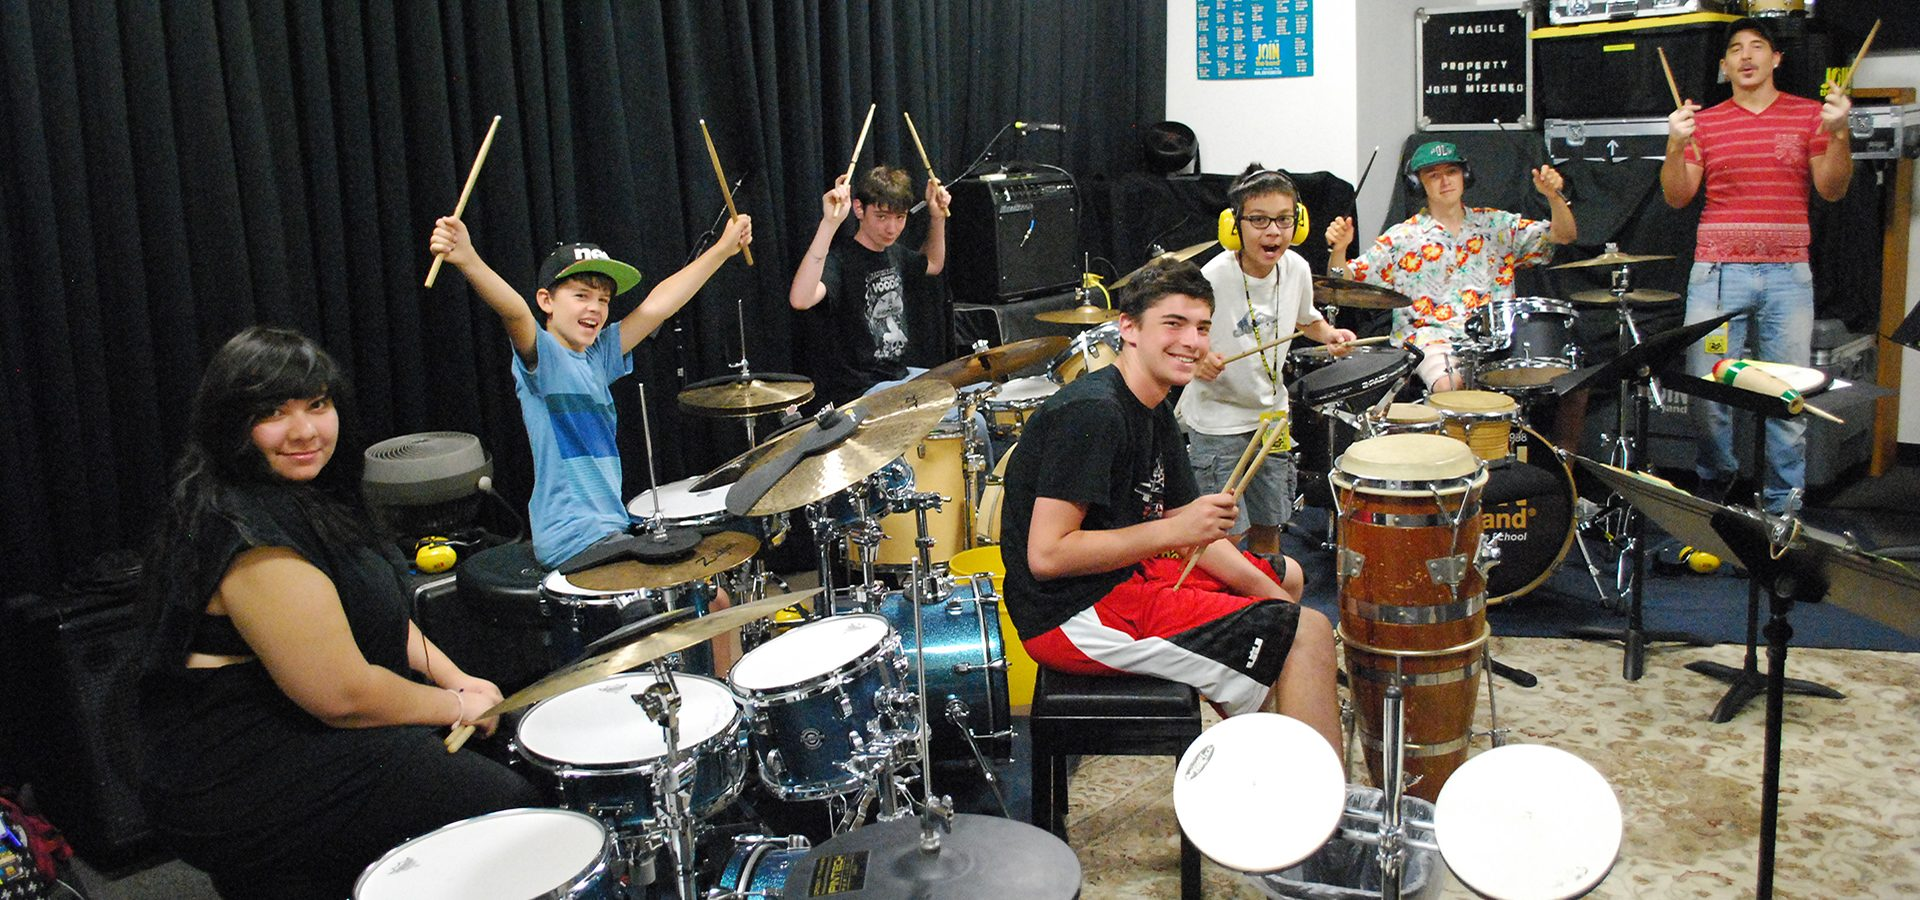 Drum Music Camp - Drummers - Sherman Oaks, Los Angeles - Join The Band